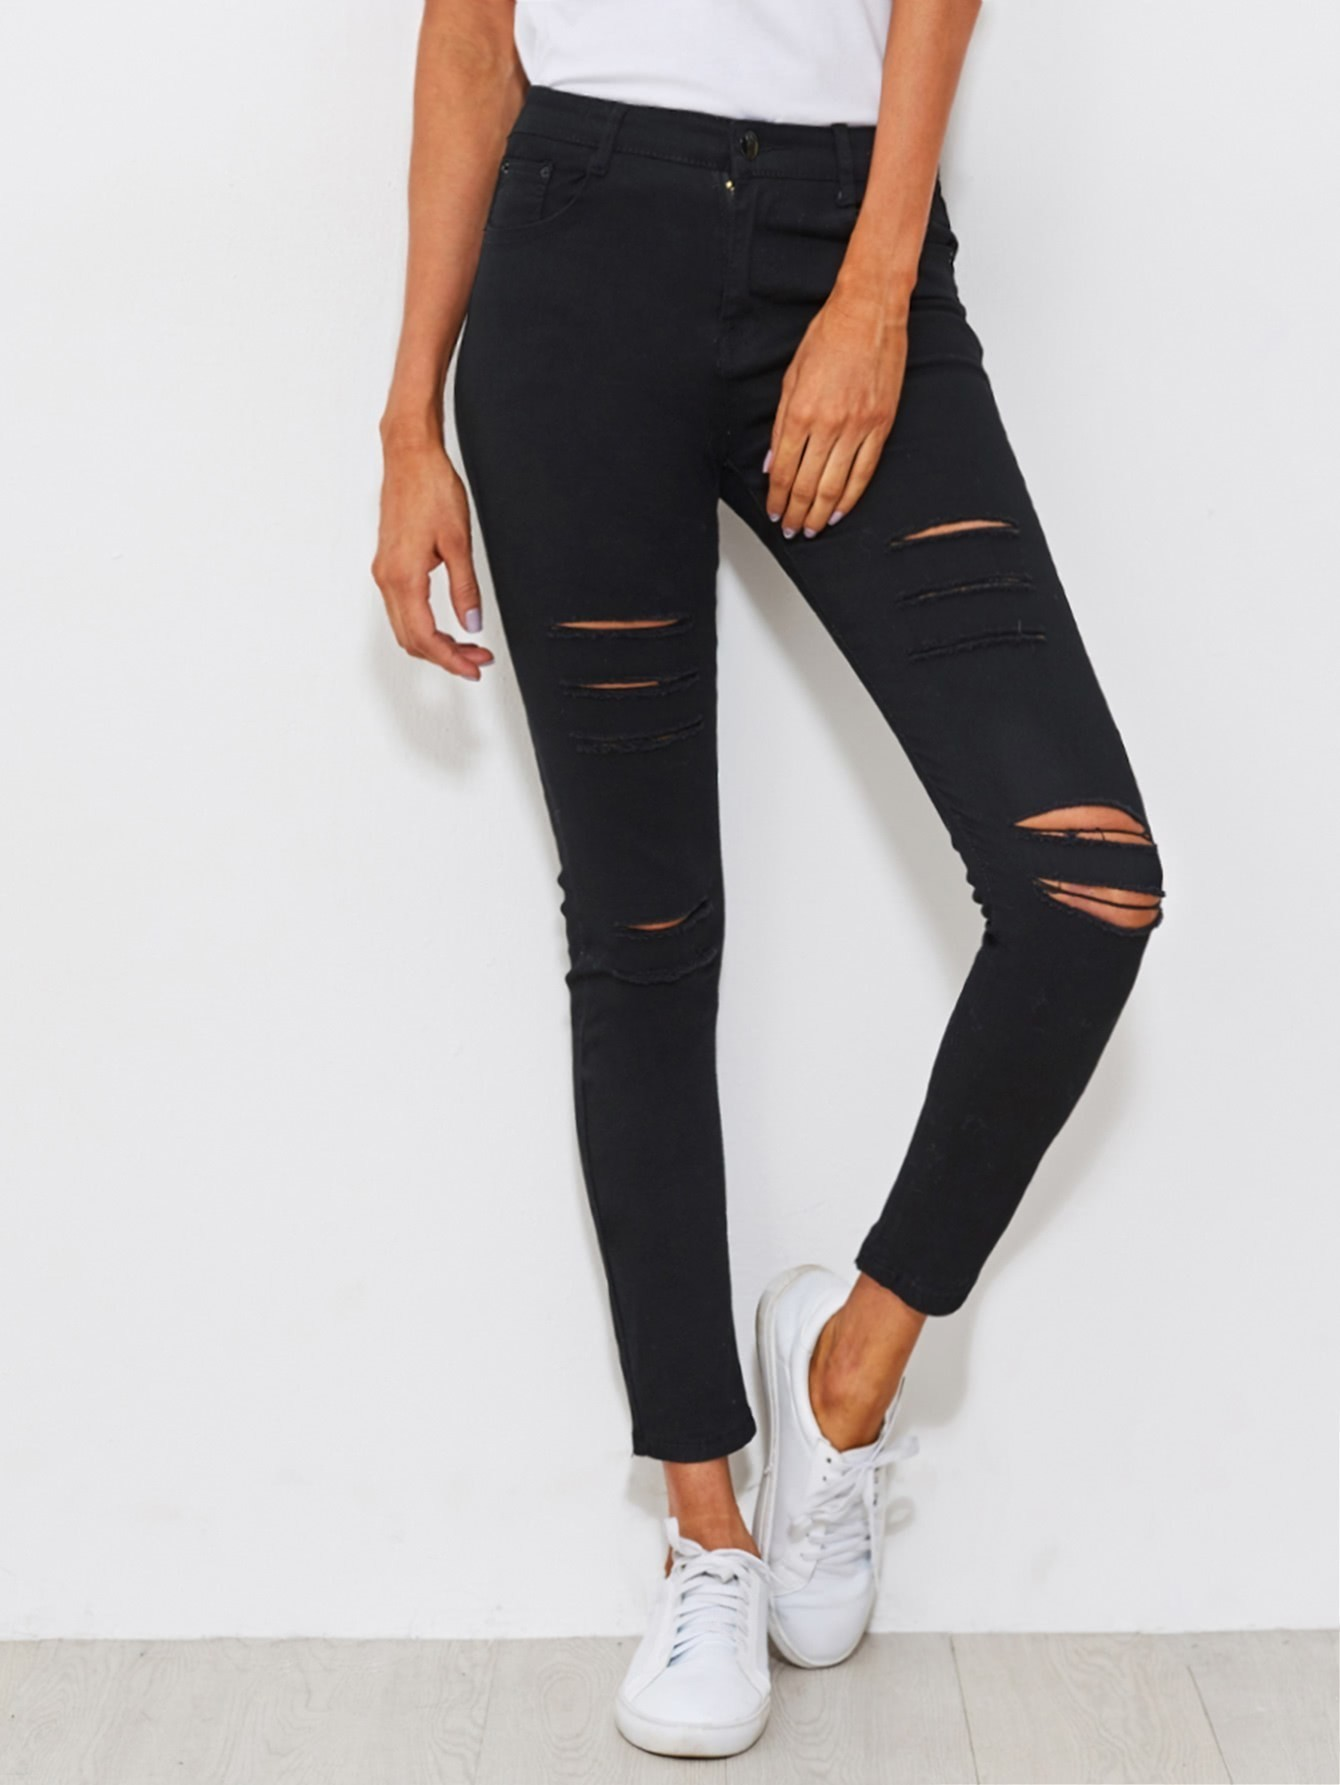 Distressed Skinny Jeans embroidered distressed skinny jeans